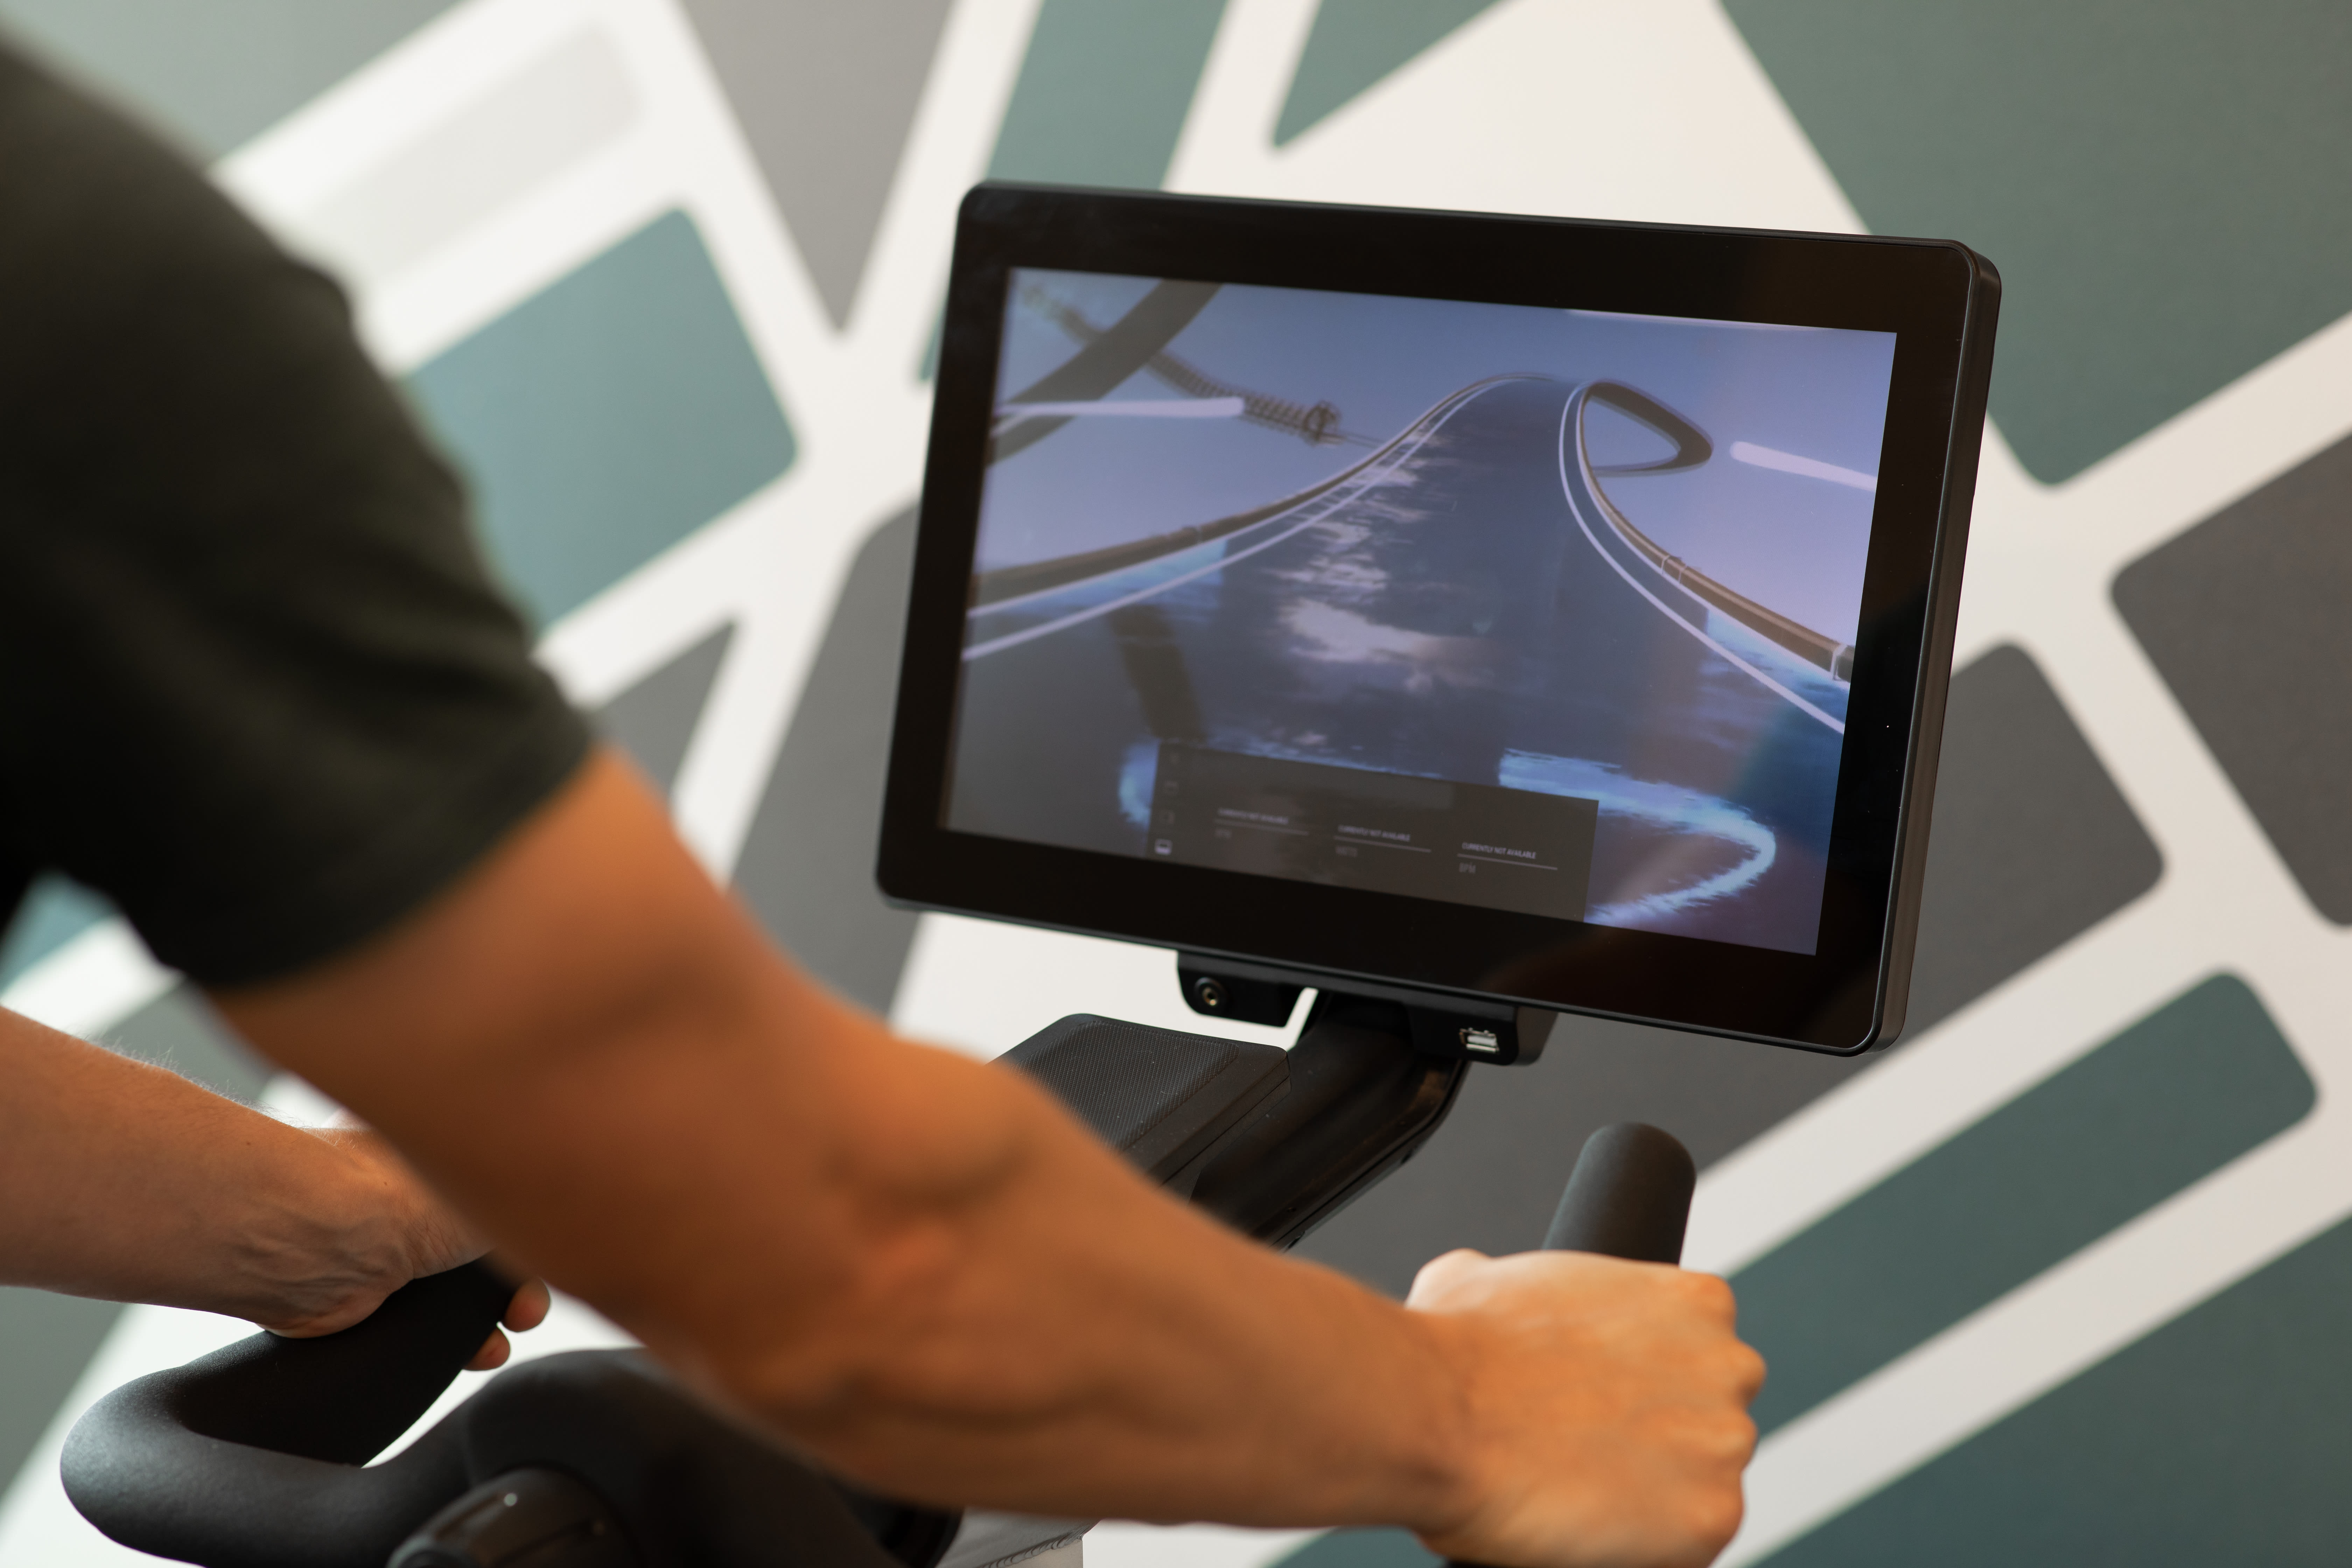 interactive work out machine at Magnolia Heights in San Antonio, Texas